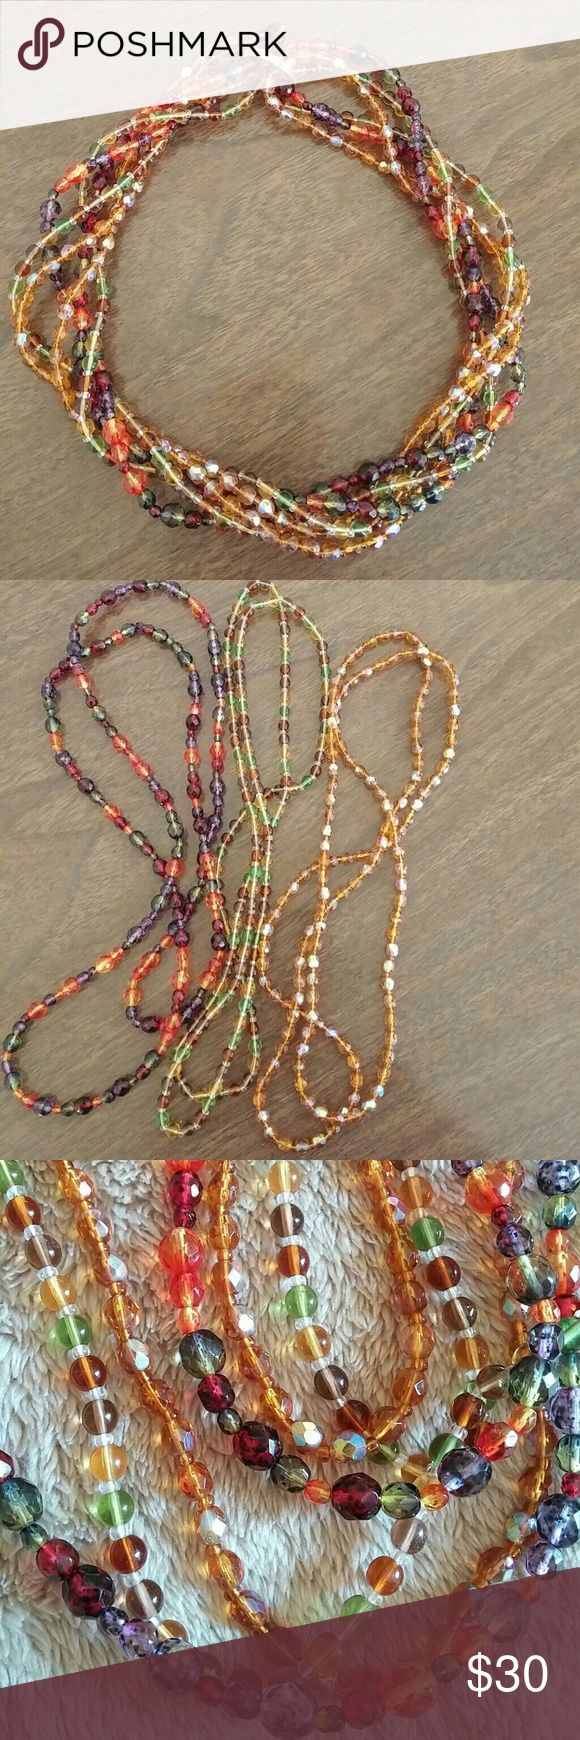 Gorgeous fall colors in 3 necklaces torsade